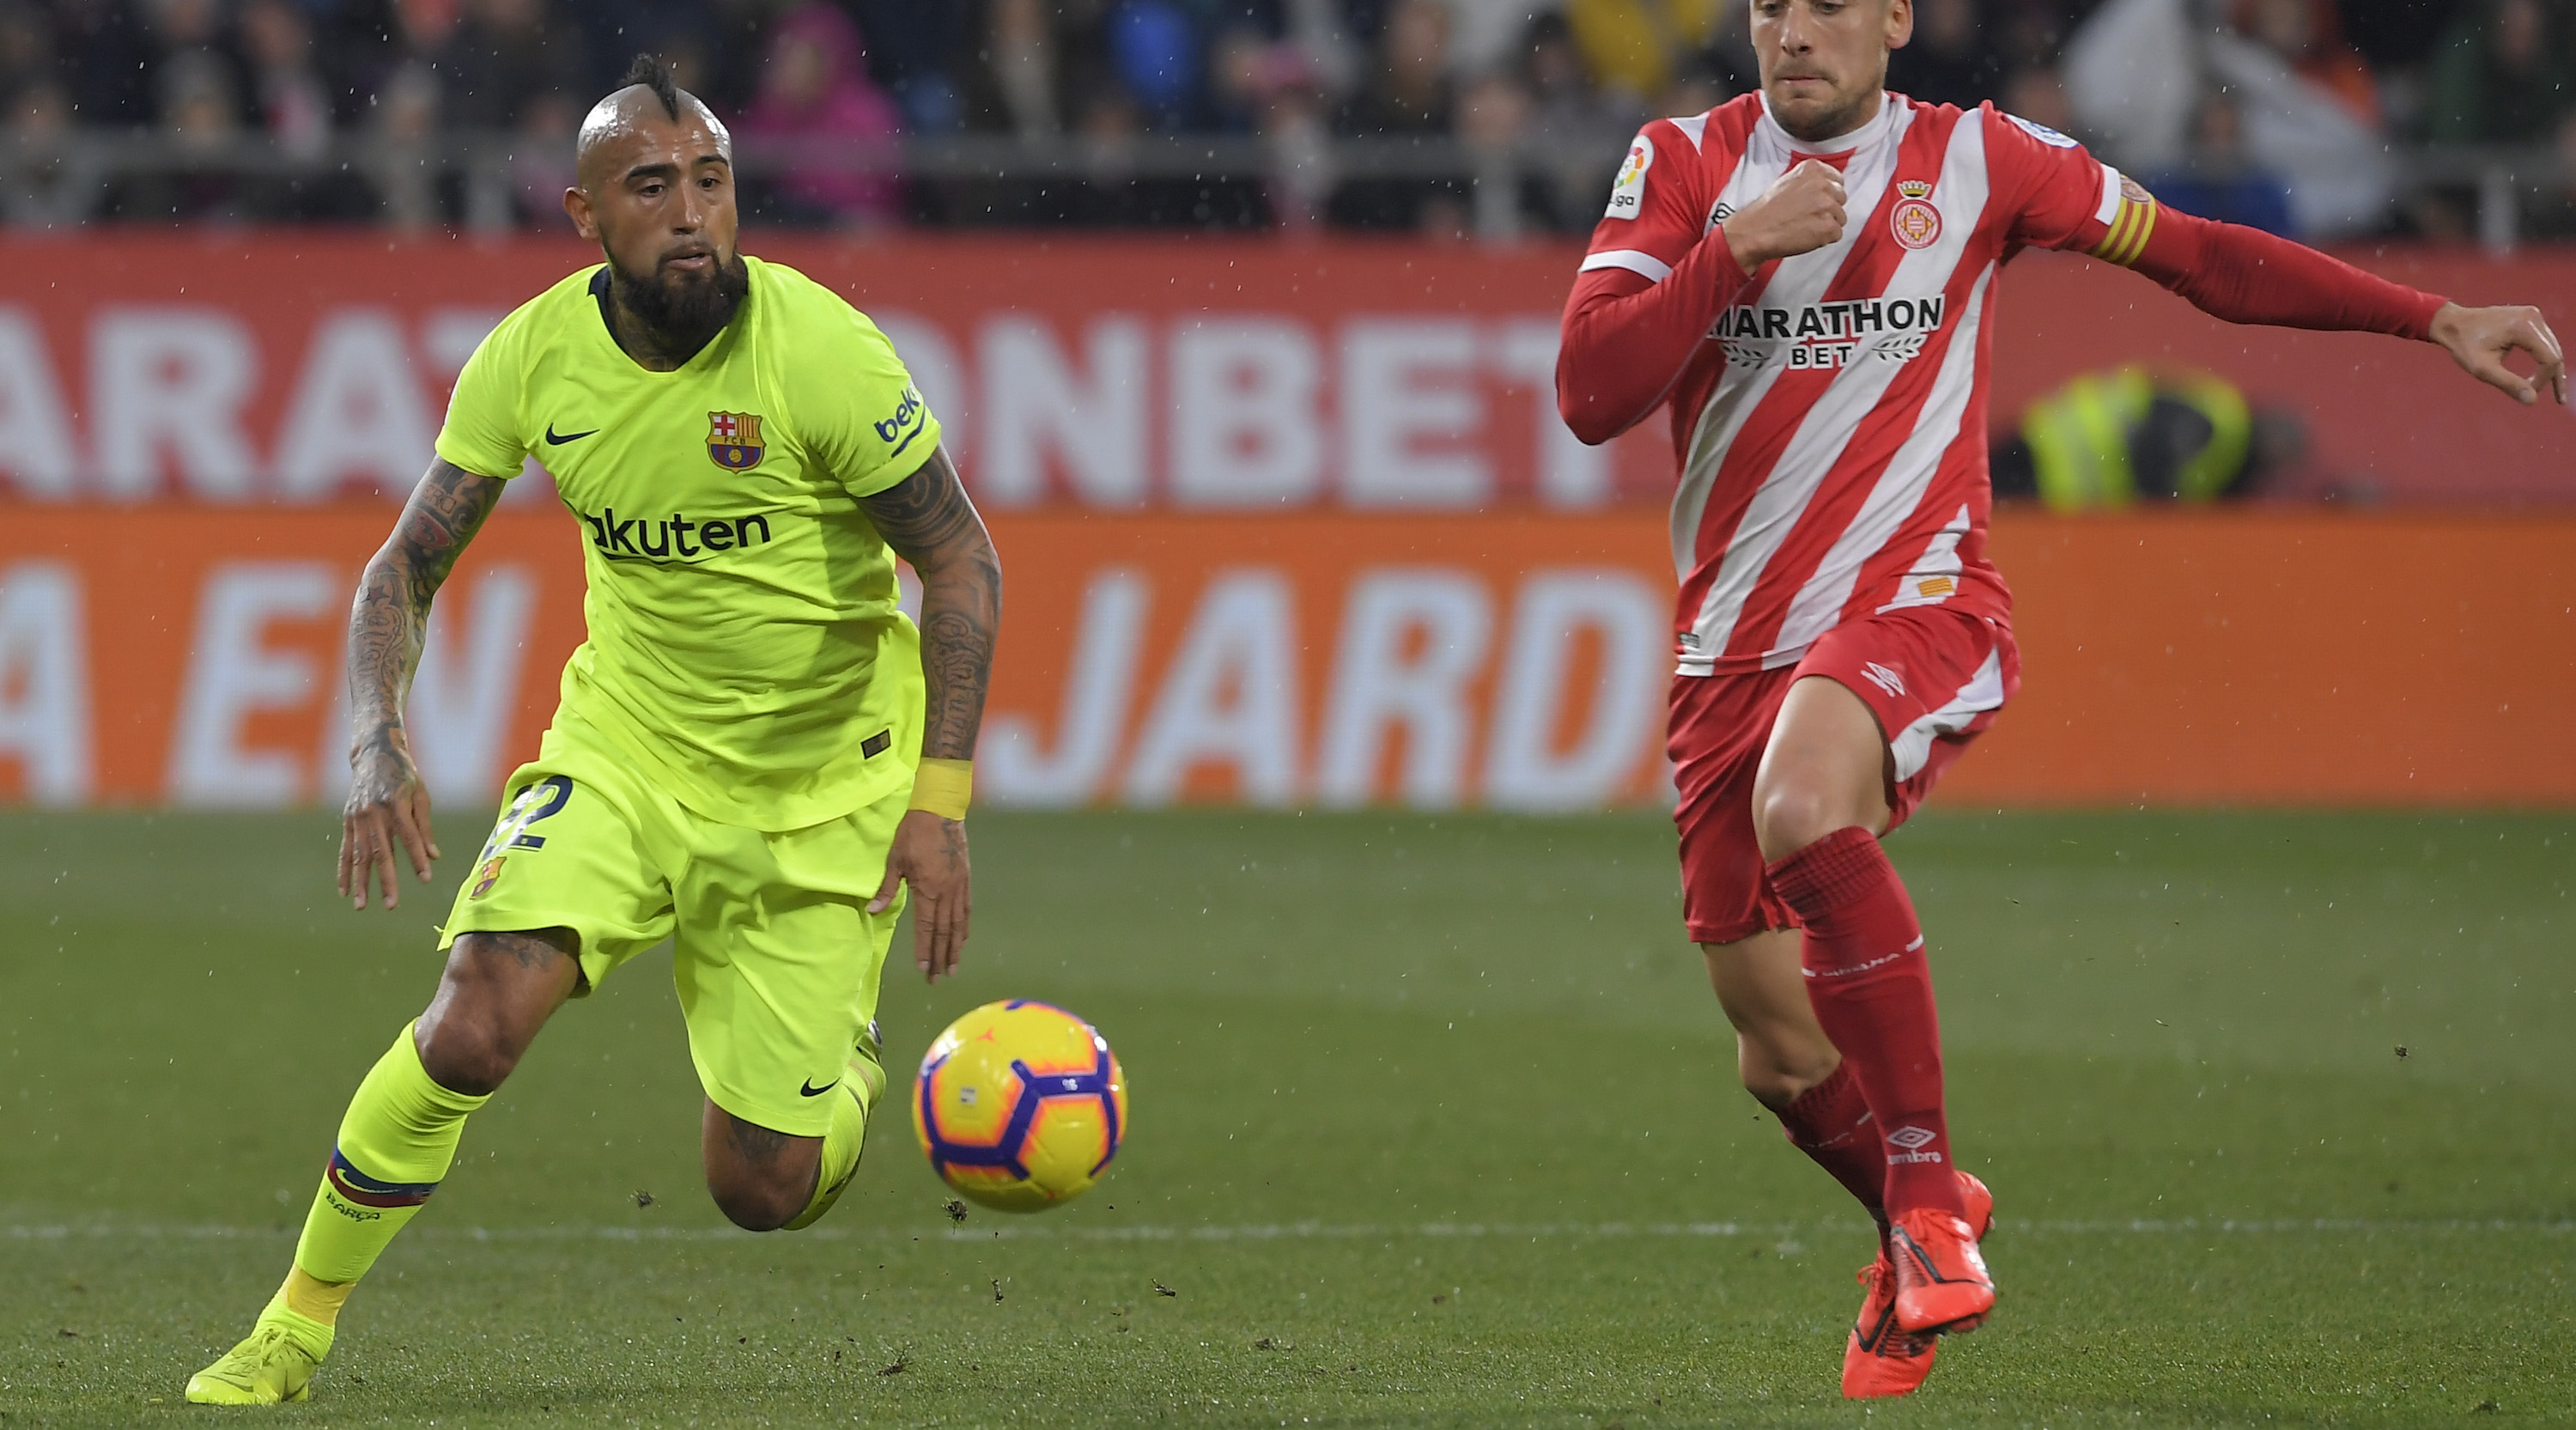 Girona's Spanish midfielder Alex Granell (R) vies with Barcelona's Chilean midfielder Arturo Vidal during the Spanish league football match between Girona FC and FC Barcelona at the Montilivi stadium in Girona on January 27, 2019. (Photo by LLUIS GENE / AFP) (Photo credit should read LLUIS GENE/AFP/Getty Images)